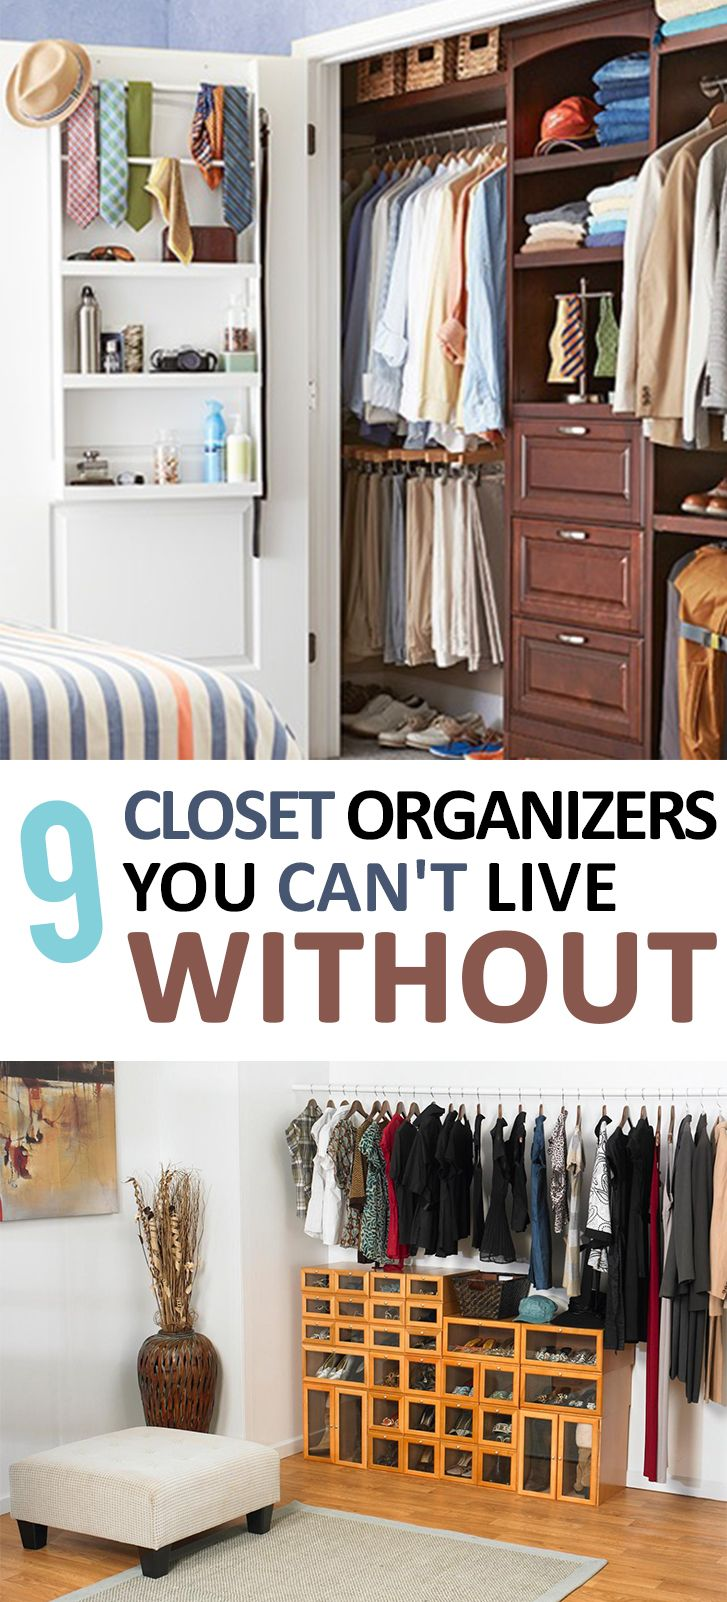 9 Closet Organizers You Can't Live Without (With images